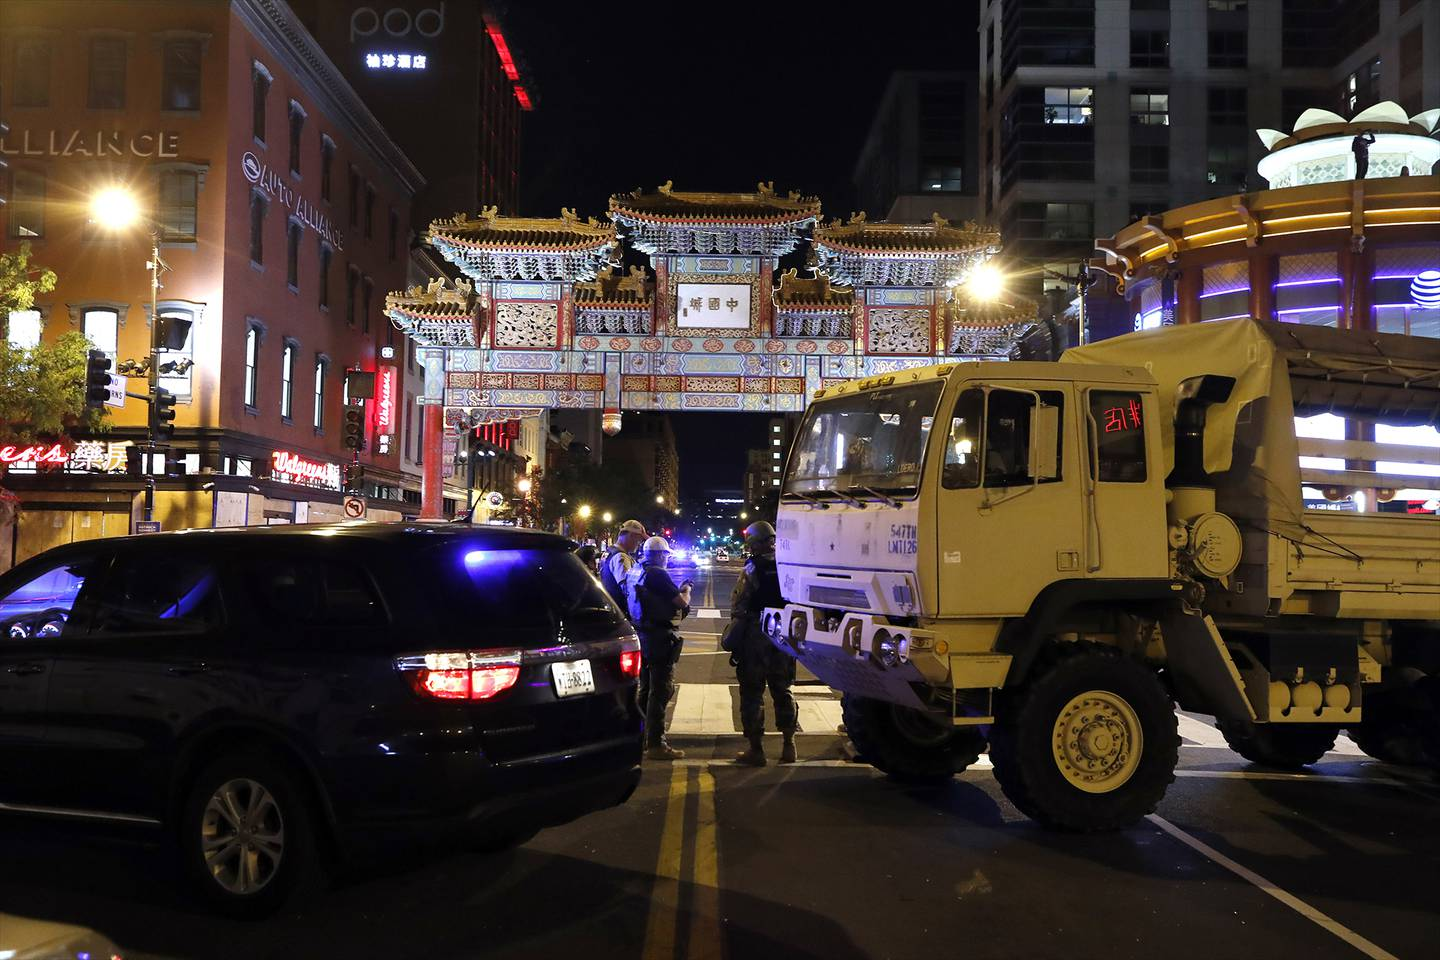 A military Humvee blocks an intersection in the Chinatown section of downtown Washington as demonstrators protest the death of George Floyd, Monday, June 1, 2020, in Washington.